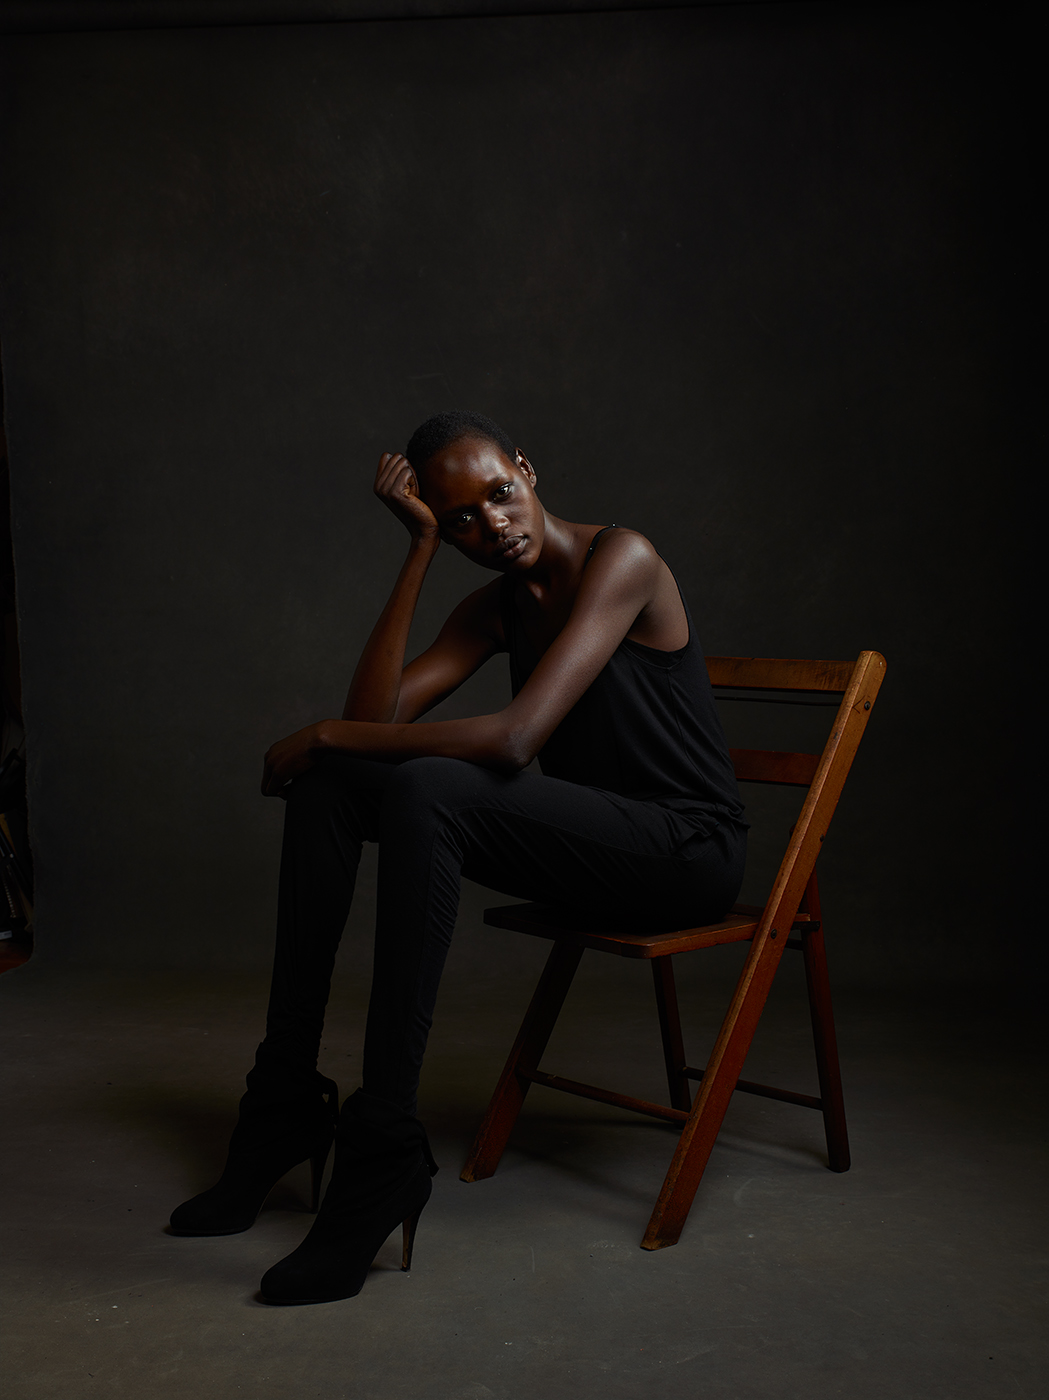 2.ajak-deng-by-mike-mellia.jpg